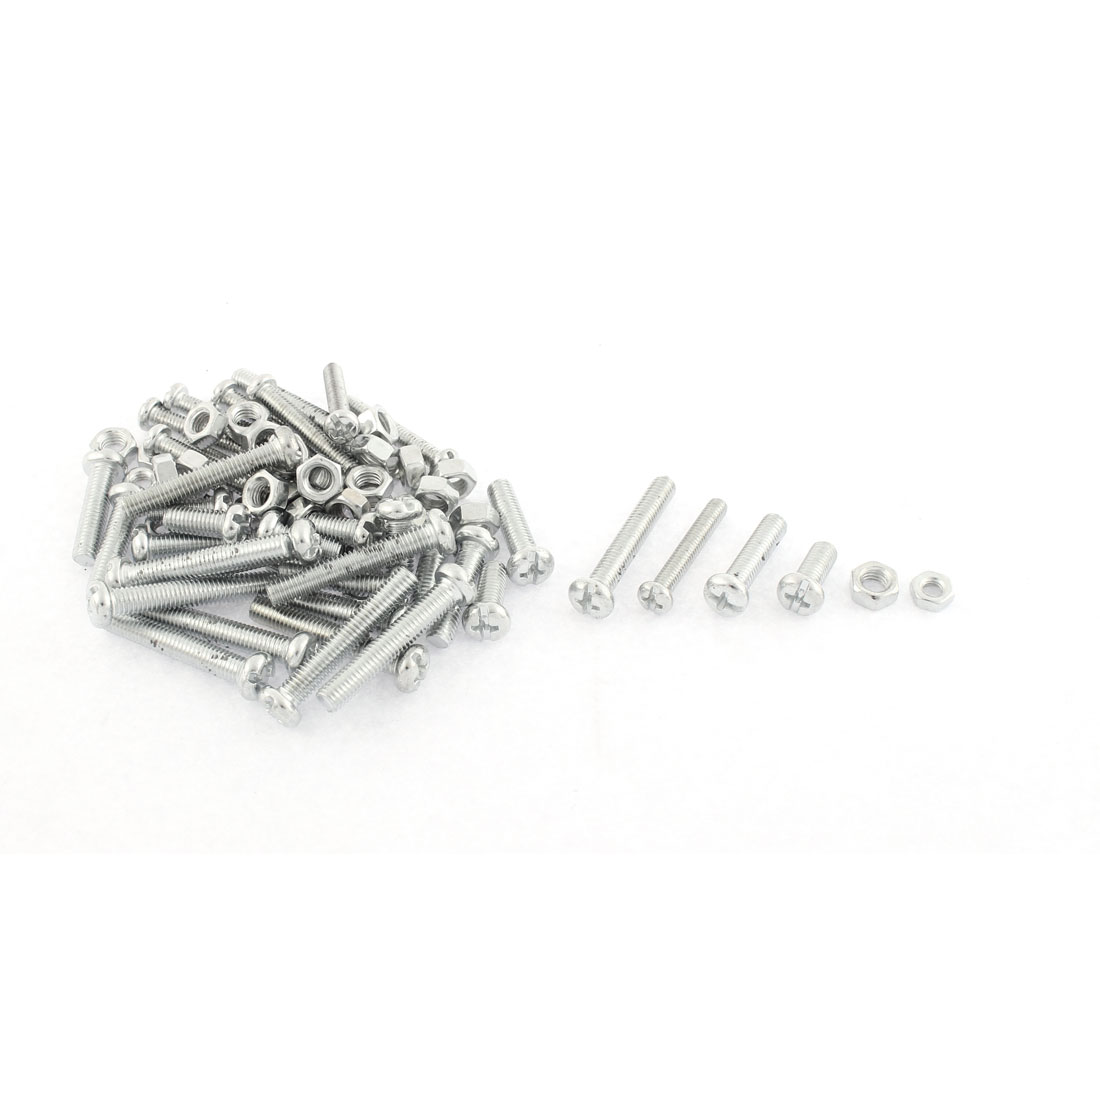 76 in 1 Phillips Pan Head Screw Bolts Nut Set Hardware Kit